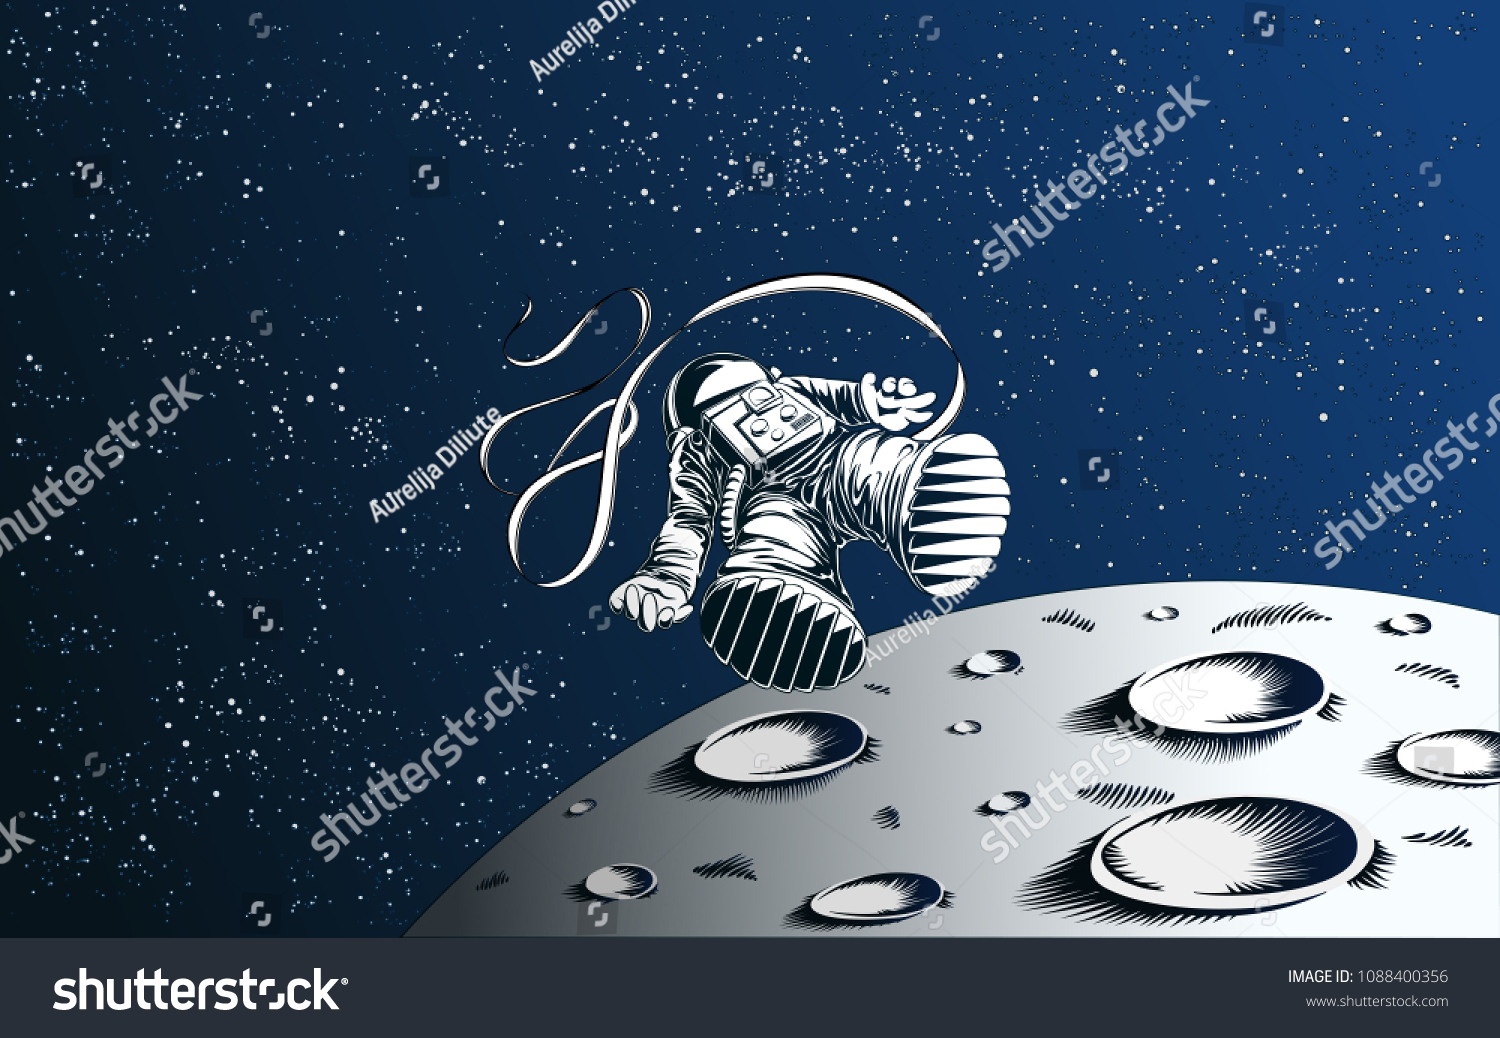 stock vector lost astronaut wallpaper blown away spaceman with moon and starry background 1088400356